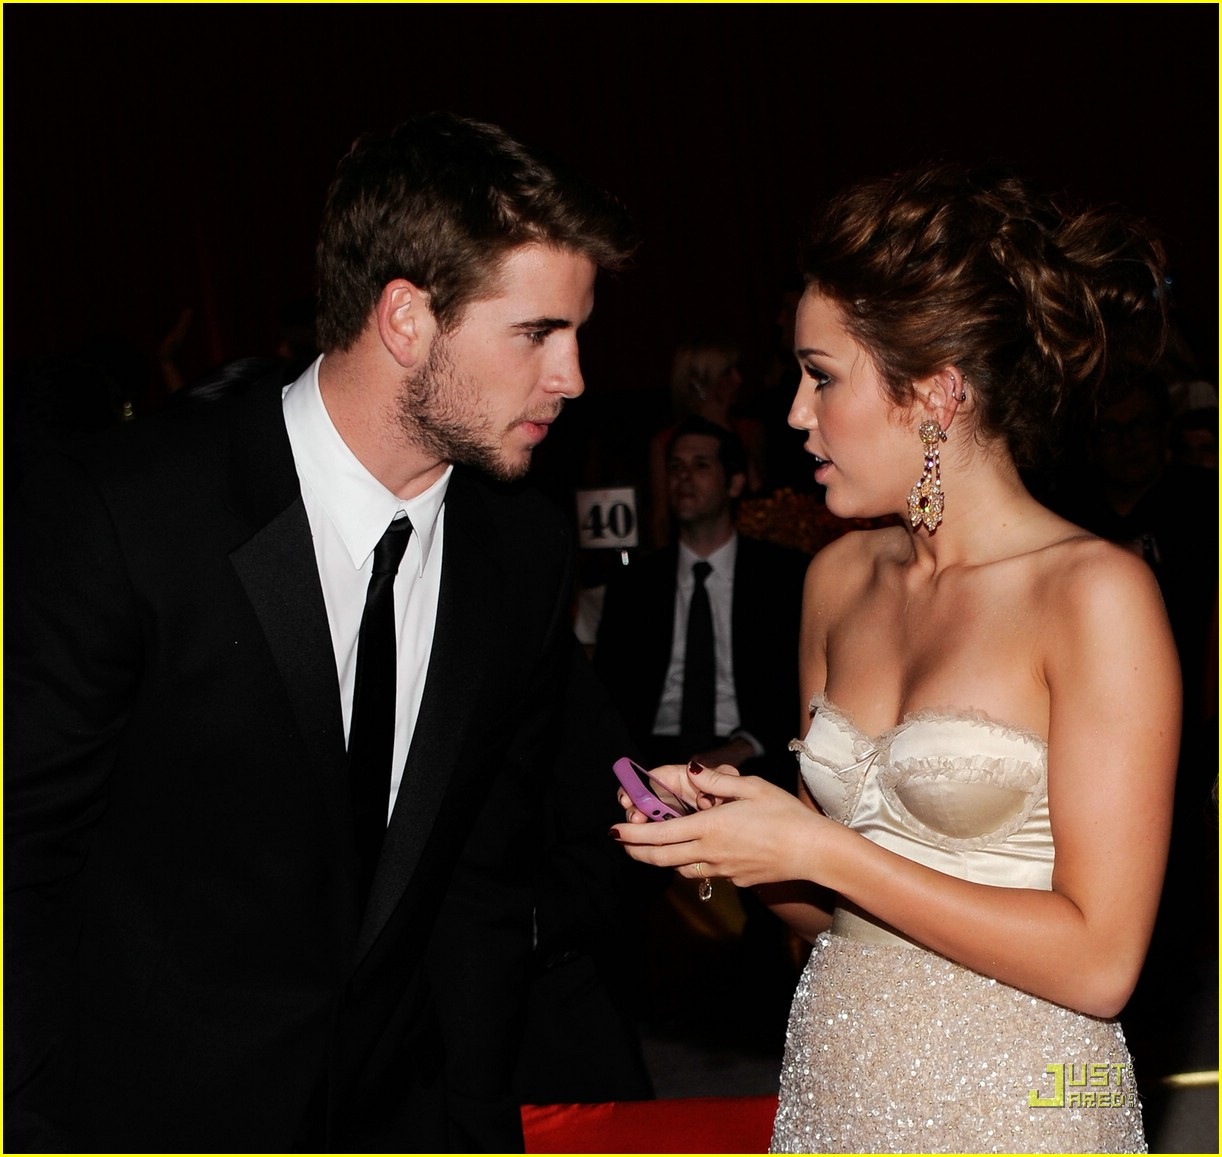 Wallpaper Liam Hemsworth | Free Download Wallpaper ...